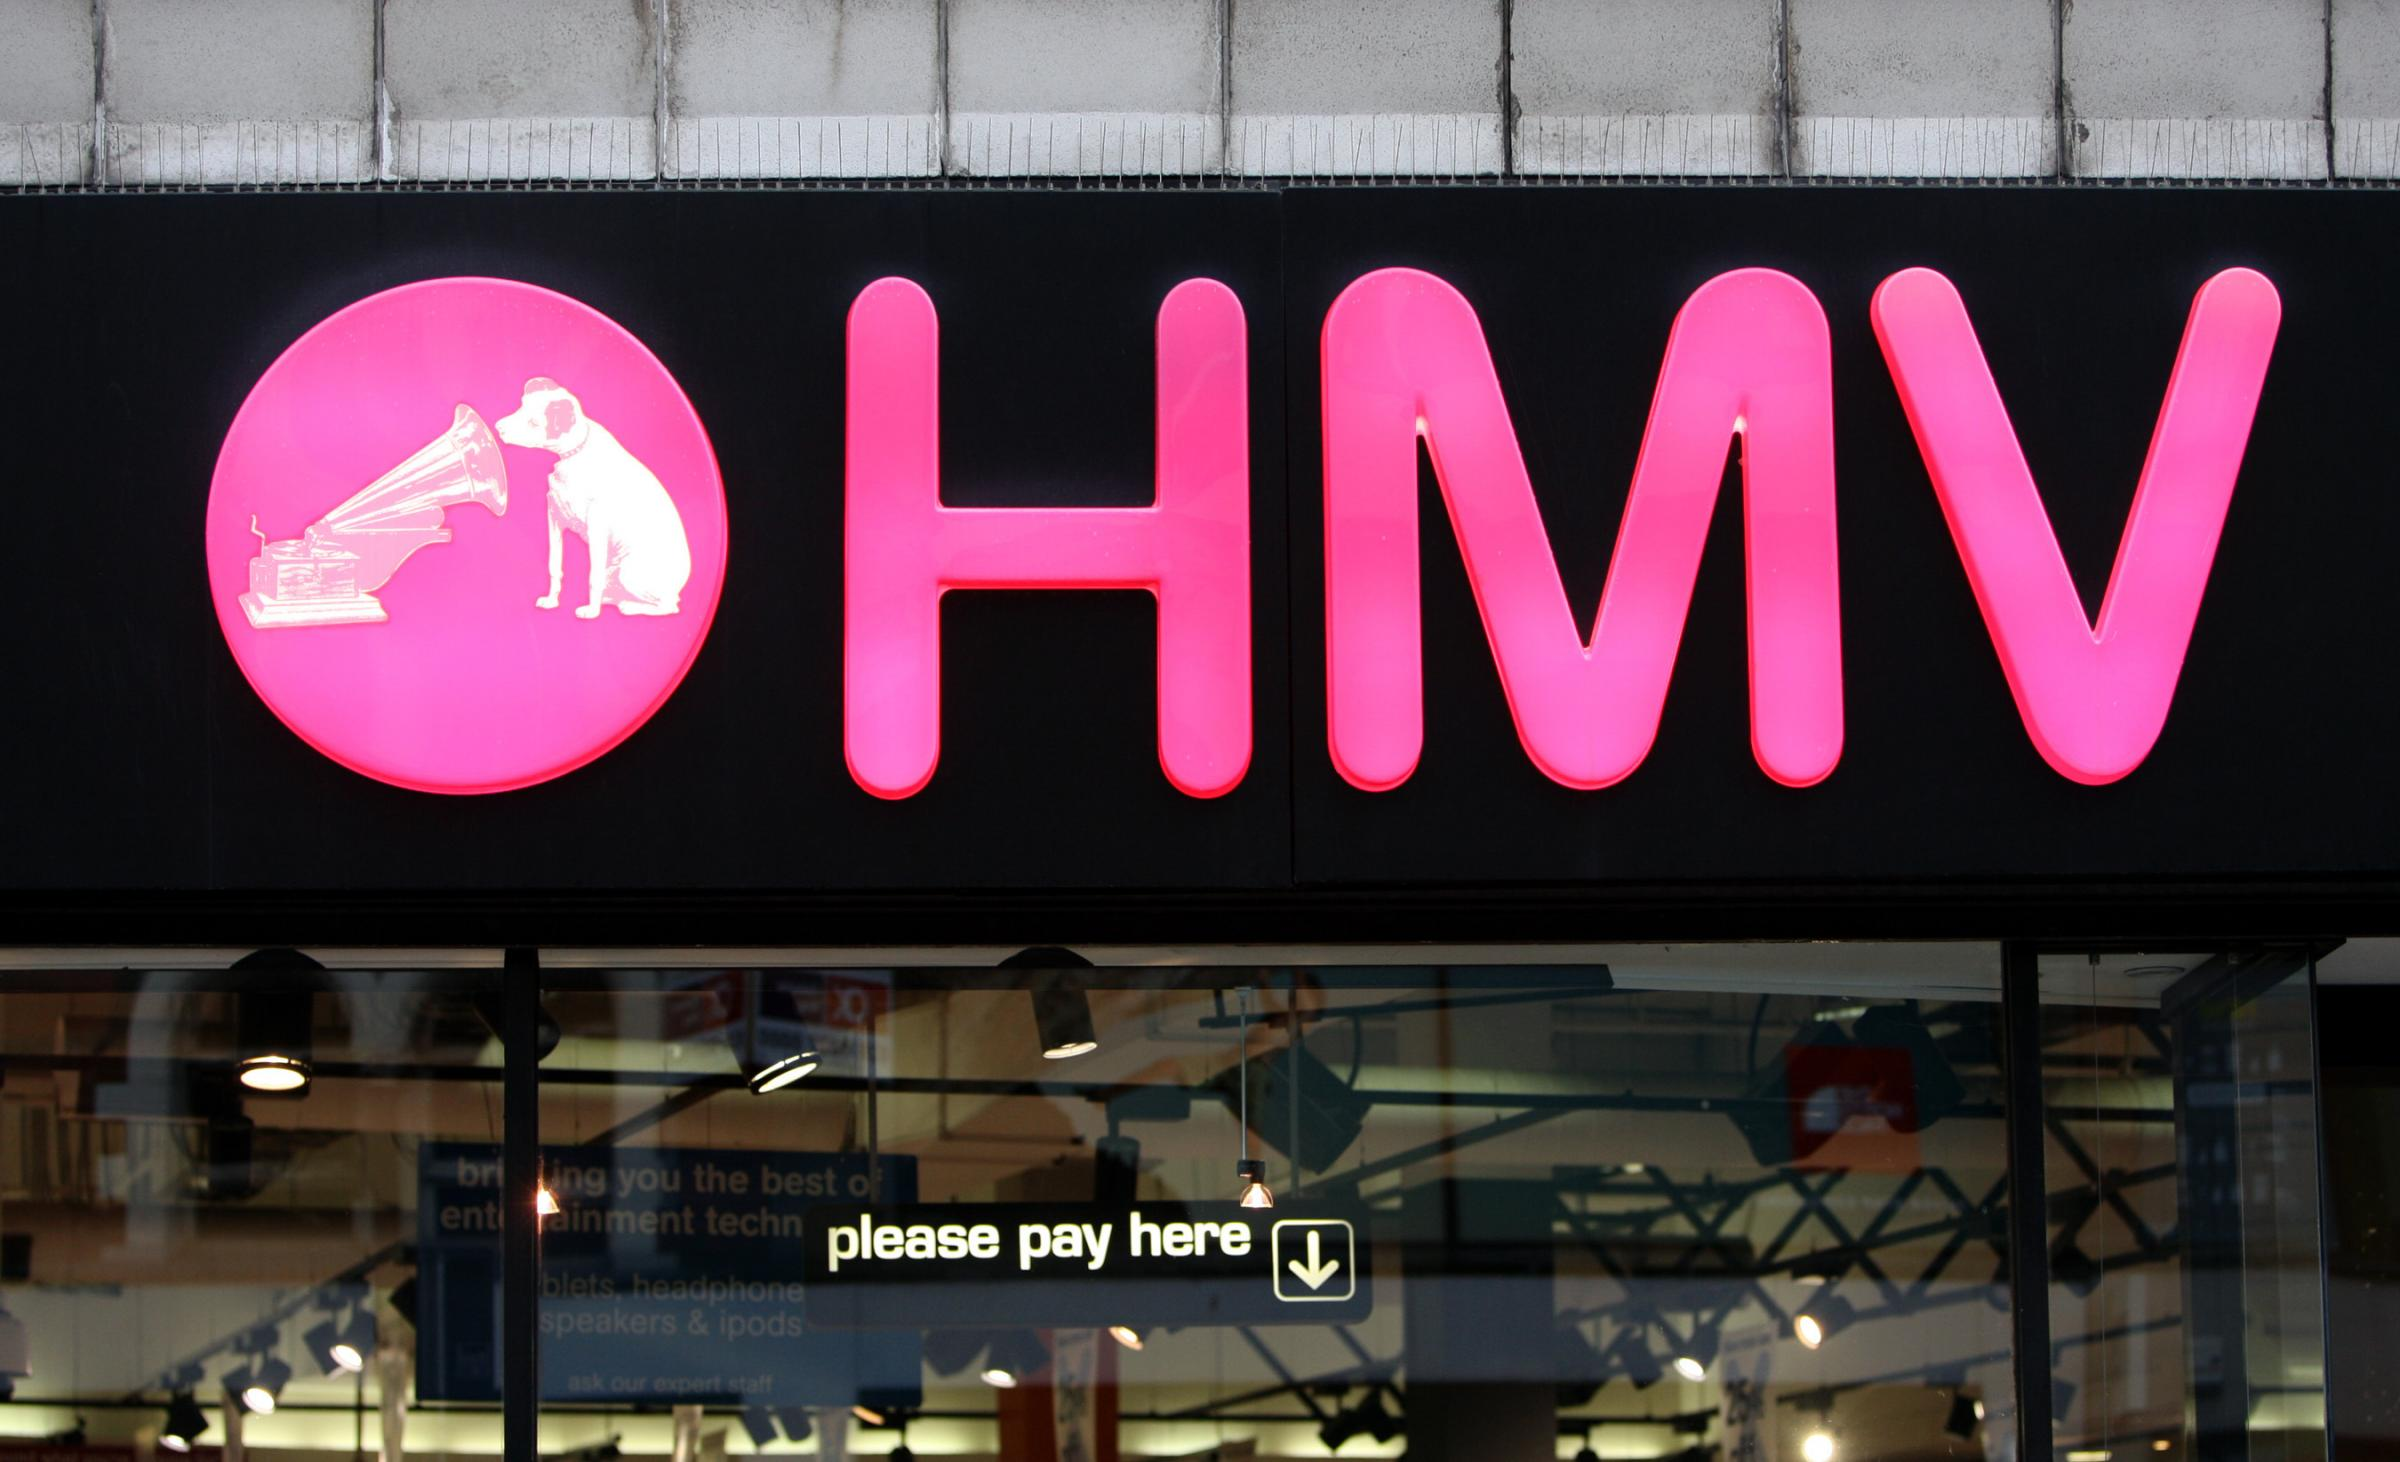 British UK music retailer HMV faces the music for second time